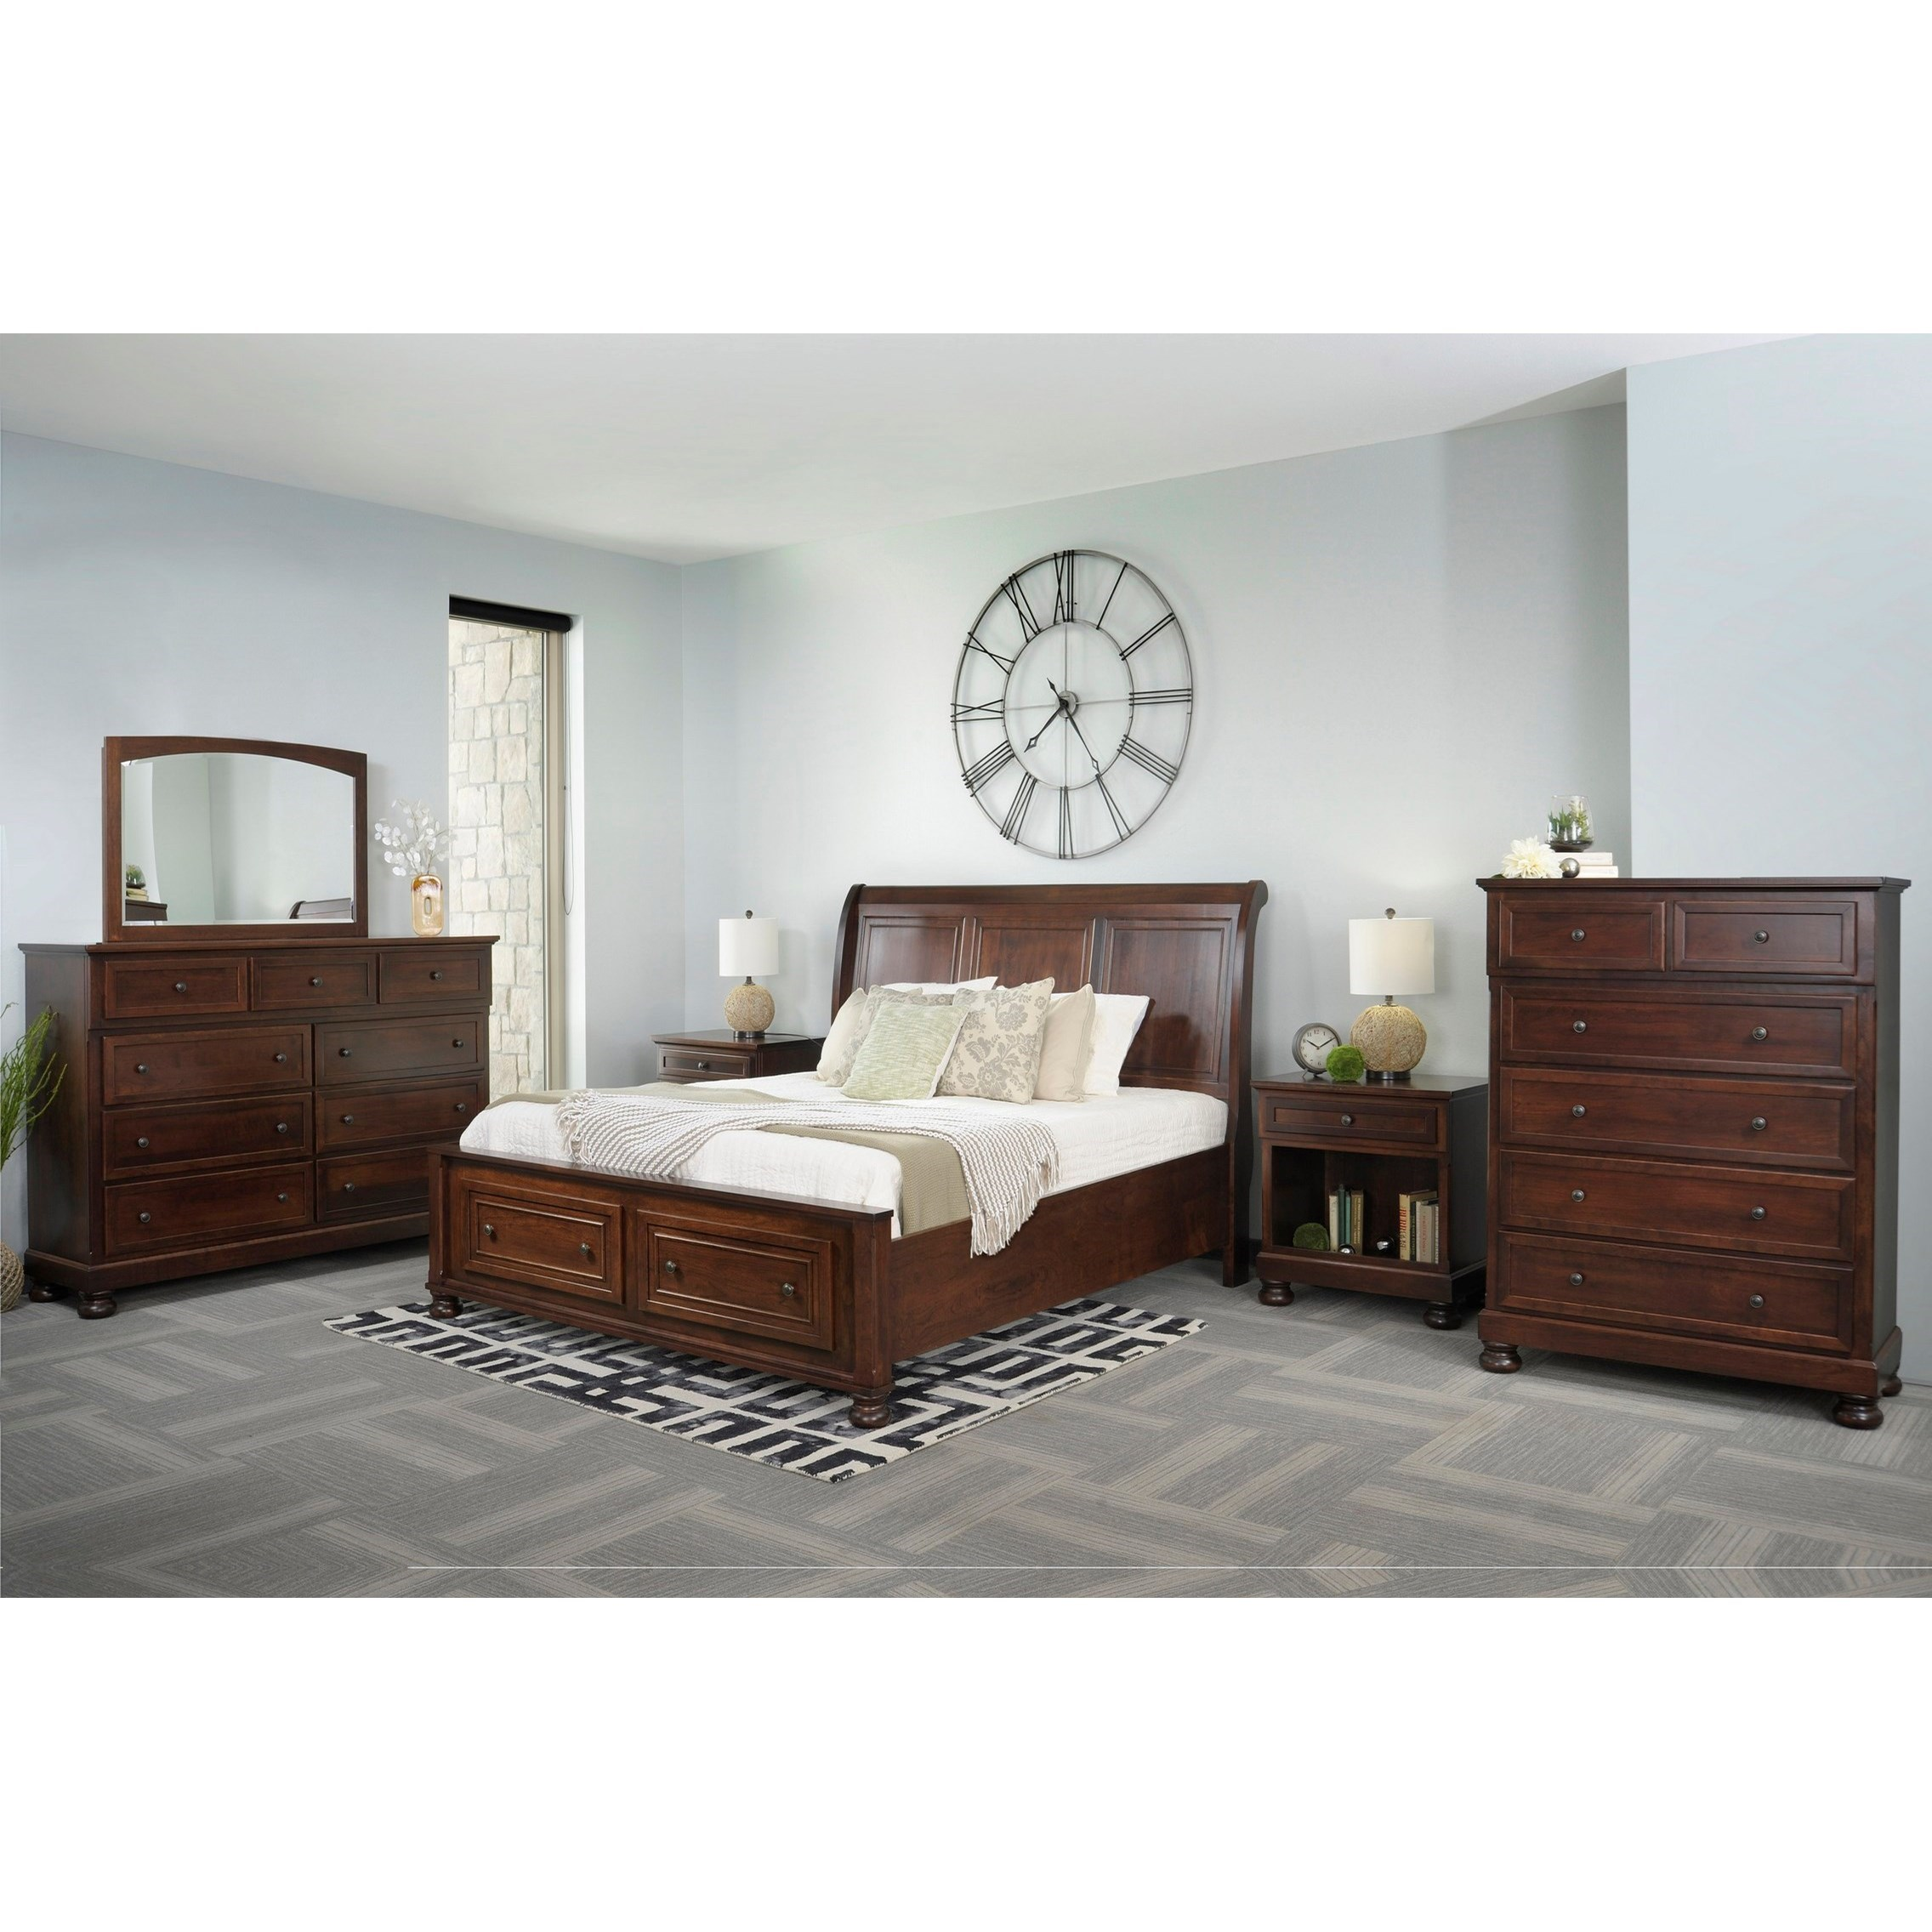 Brigantine Queen Bedroom Group by Palettes by Winesburg at Wayside Furniture